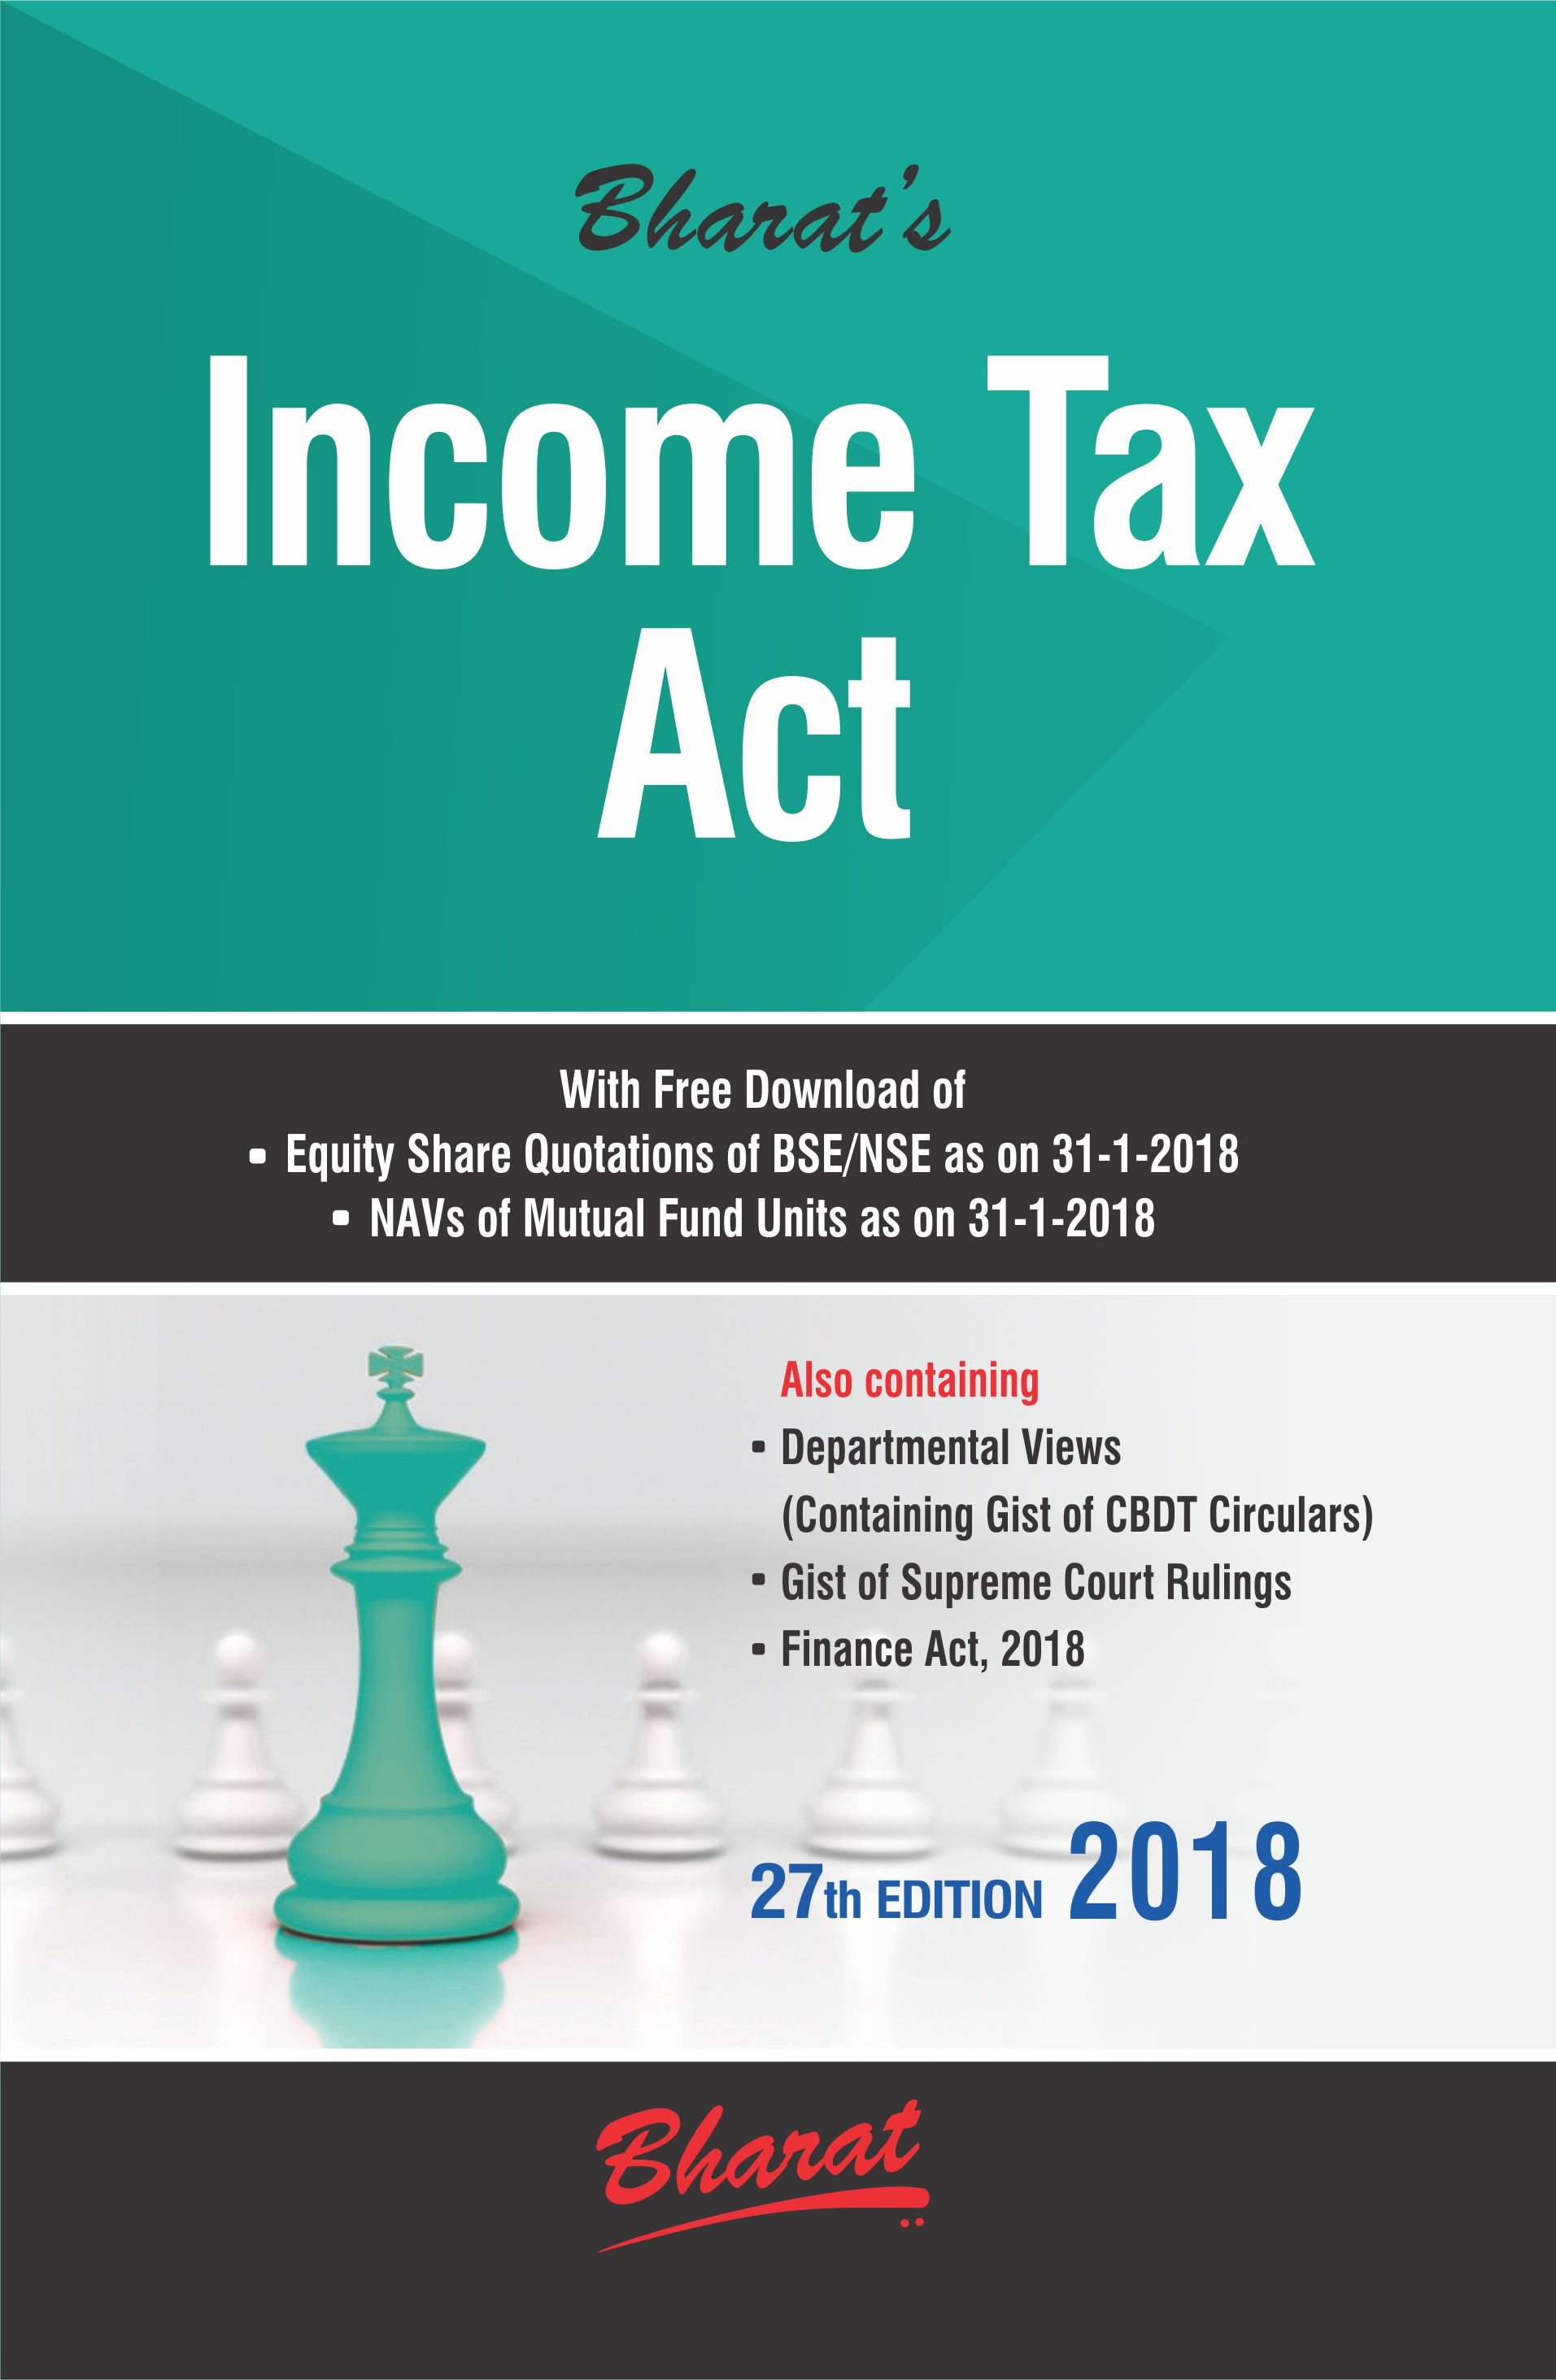 INCOME TAX ACT with Departmental Views